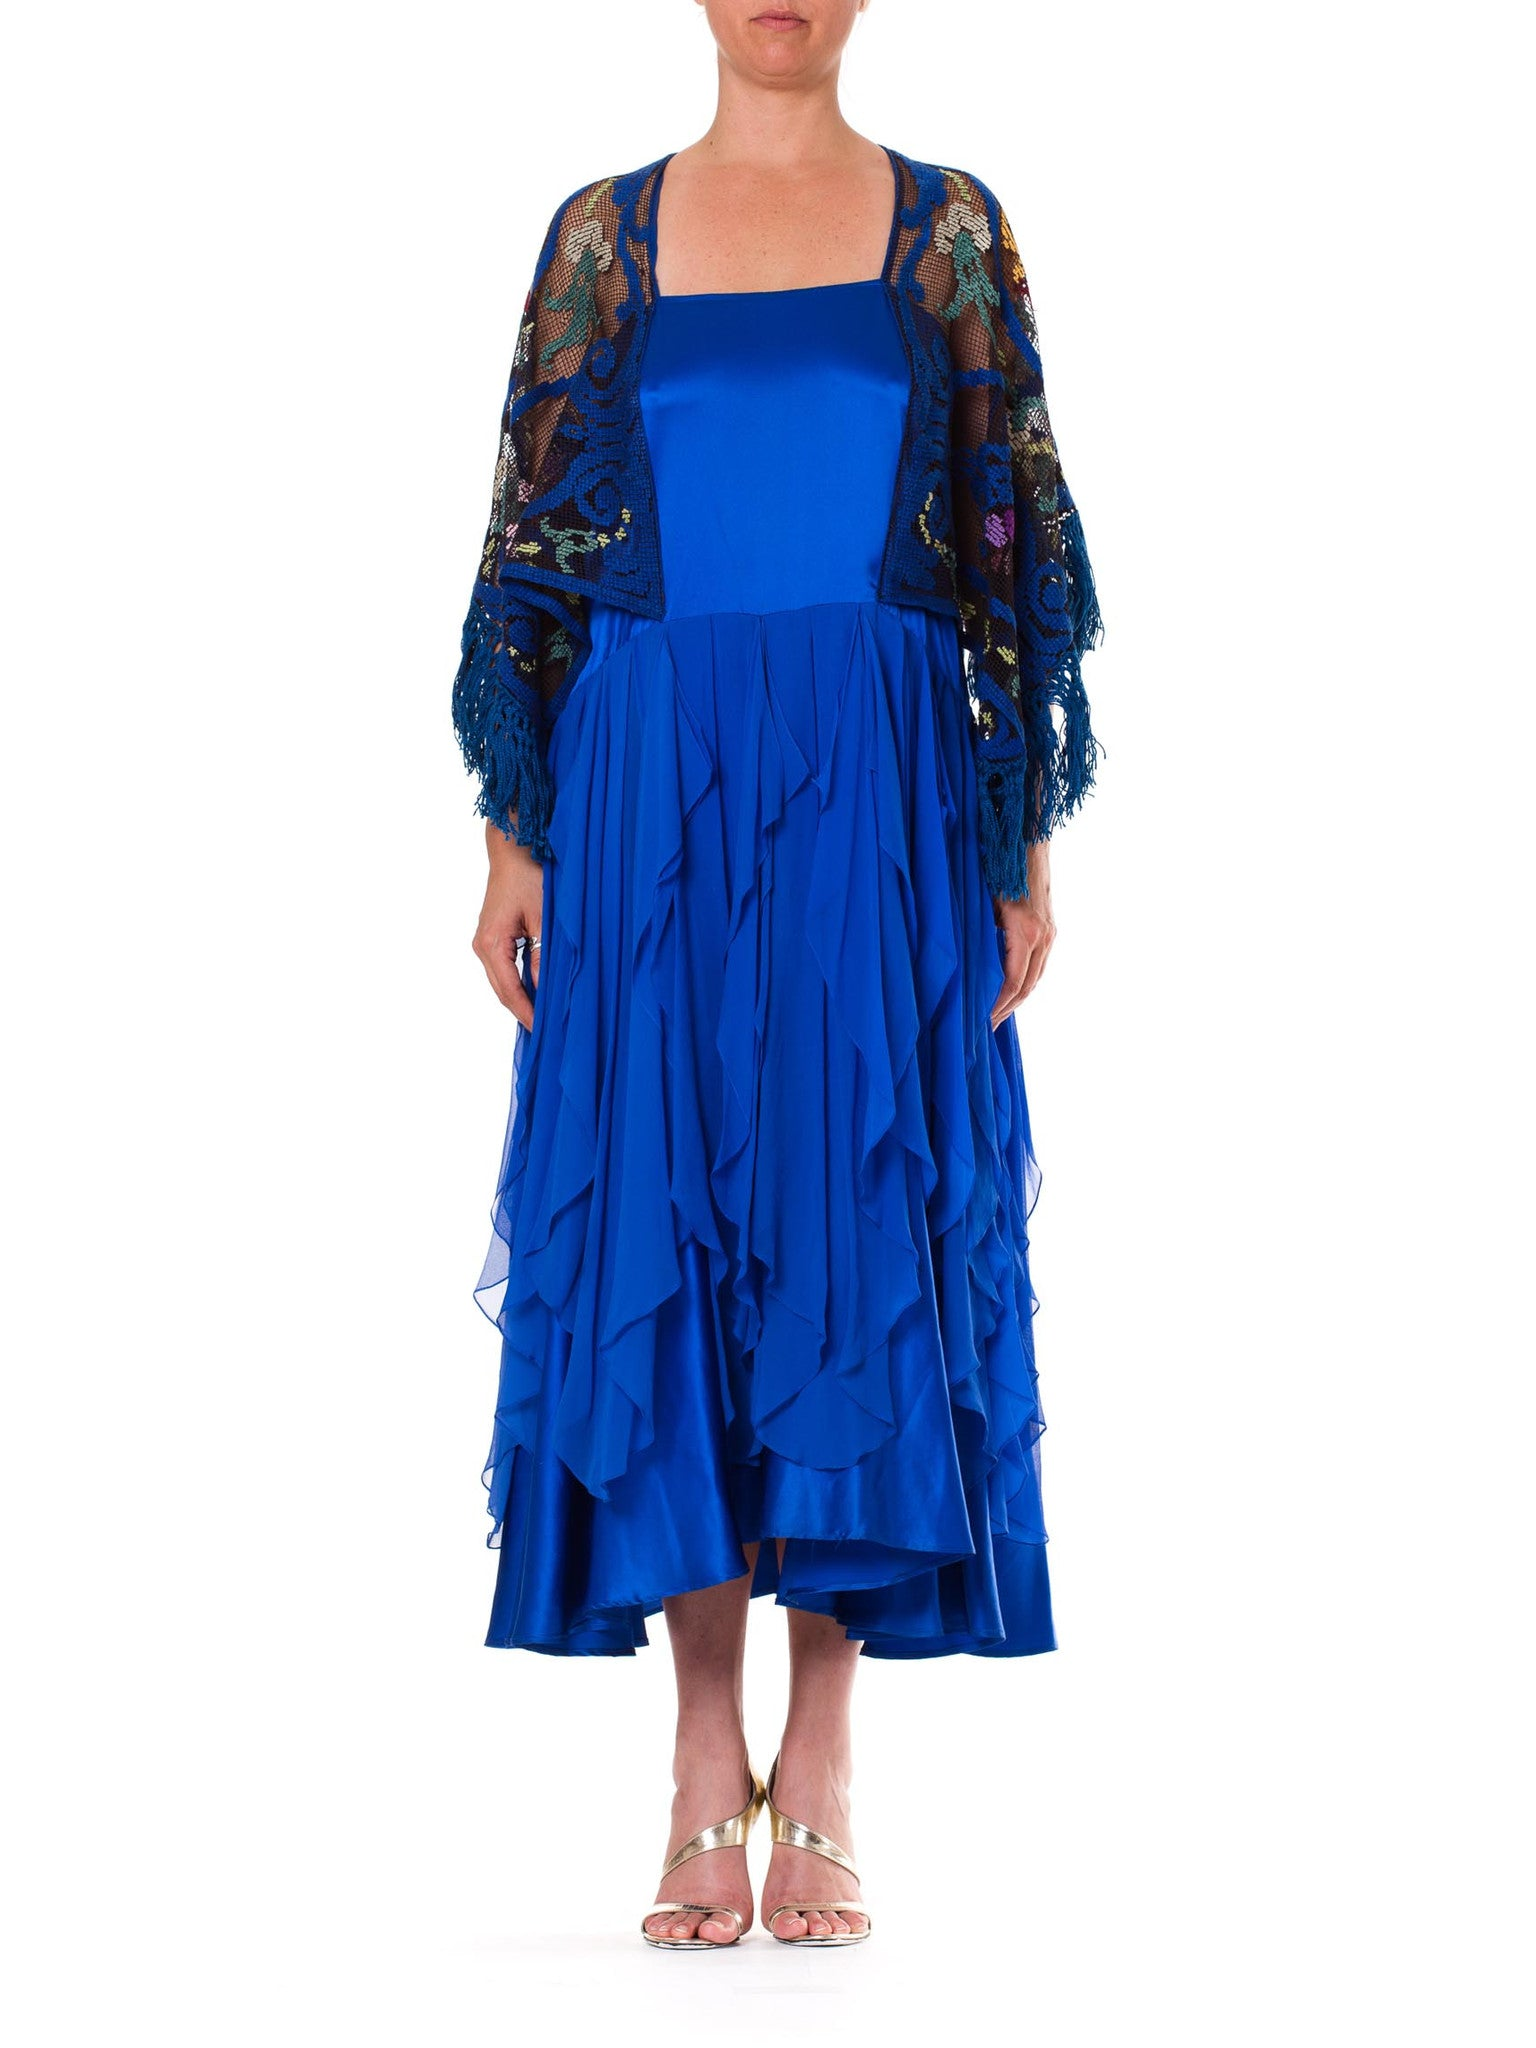 Morphew Collection Blue Silk Charmeuse  & Chiffon Dress With Antique Lace Sleeves